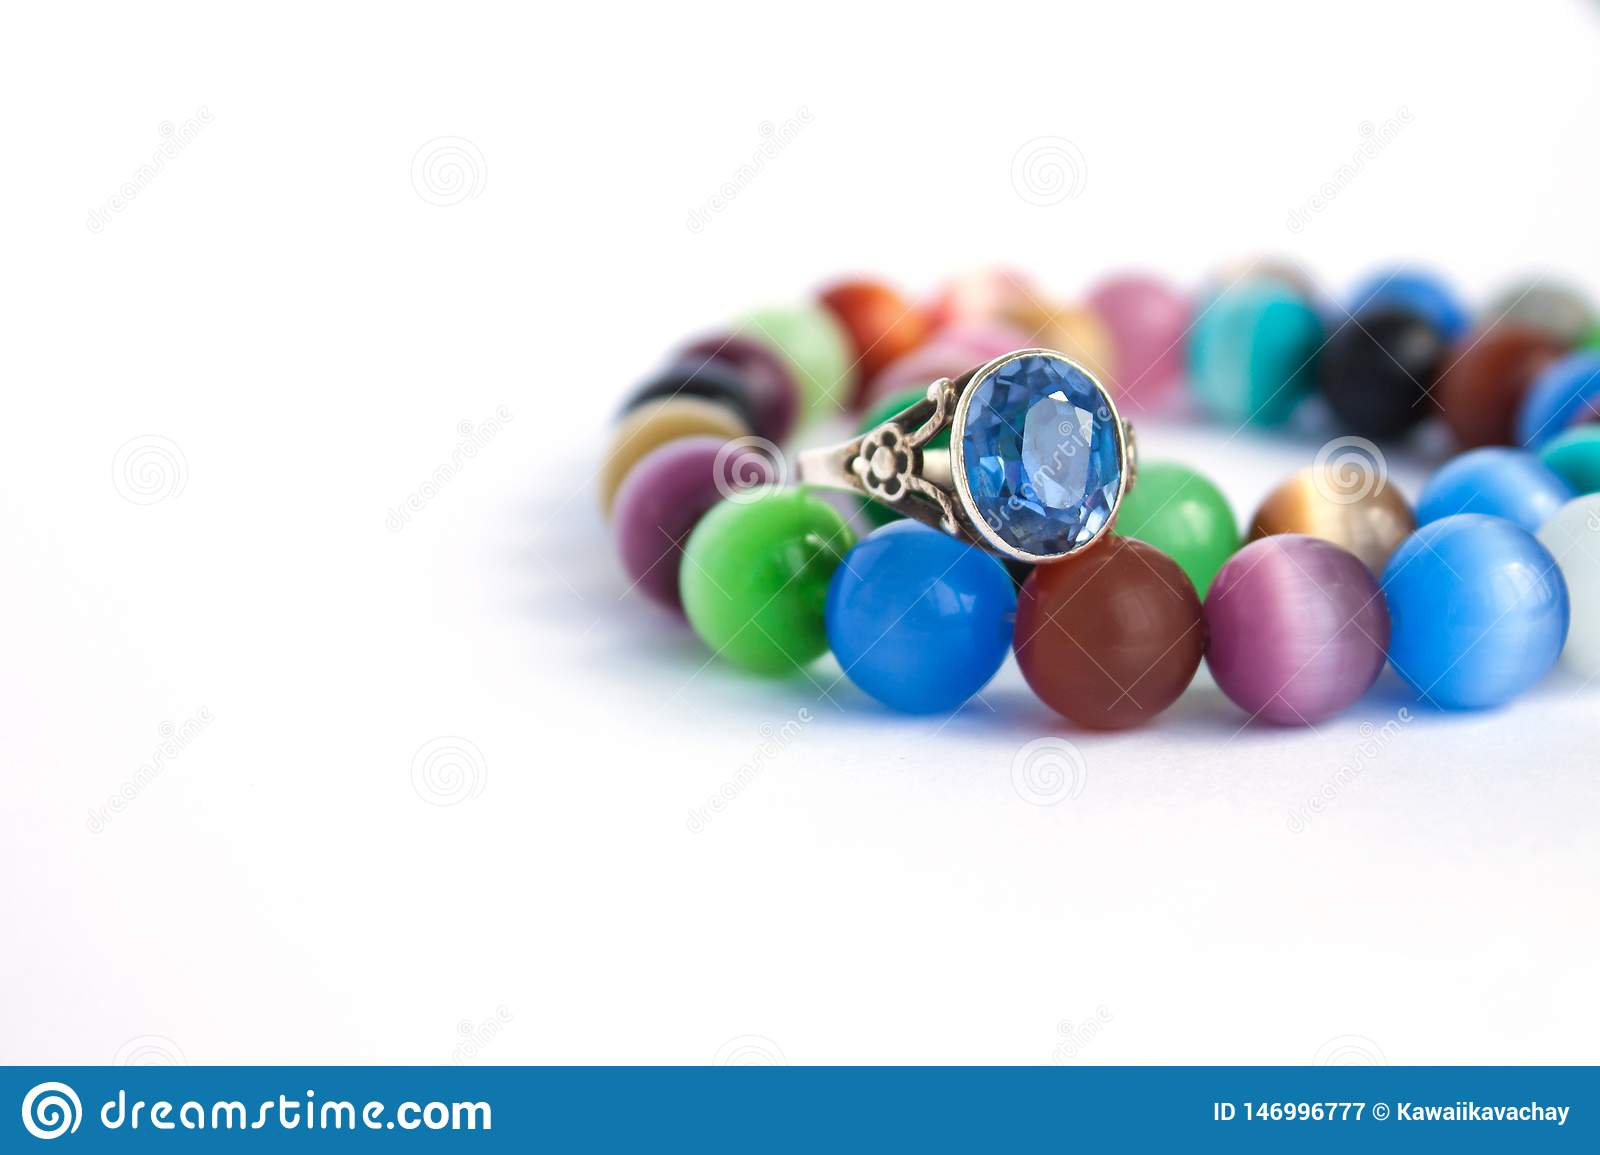 Cat`s eye quartz necklace and bracelet, selective focus on white background isolated. Colourful precious stones.